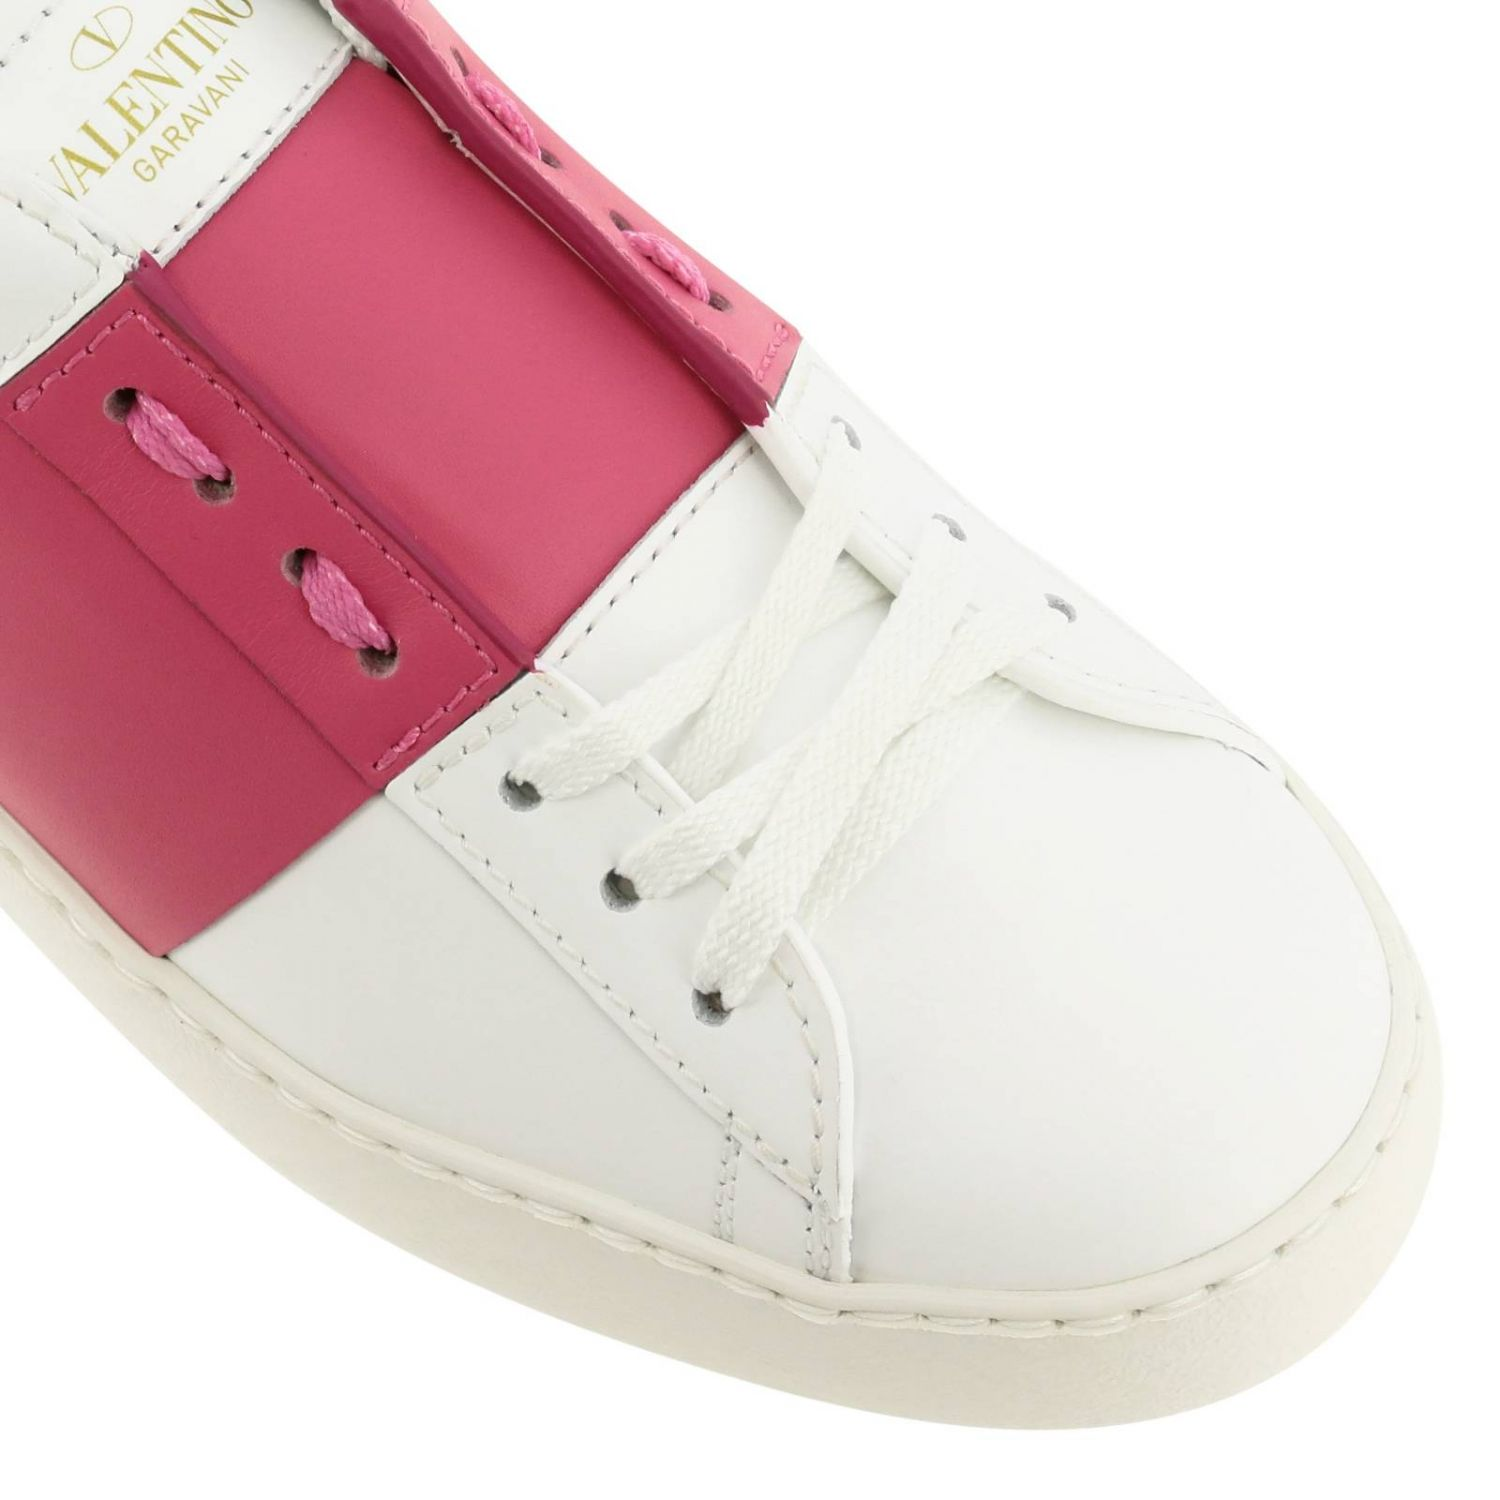 Open Rockstud sneakers Valentino Garavani in genuine leather with band white 4